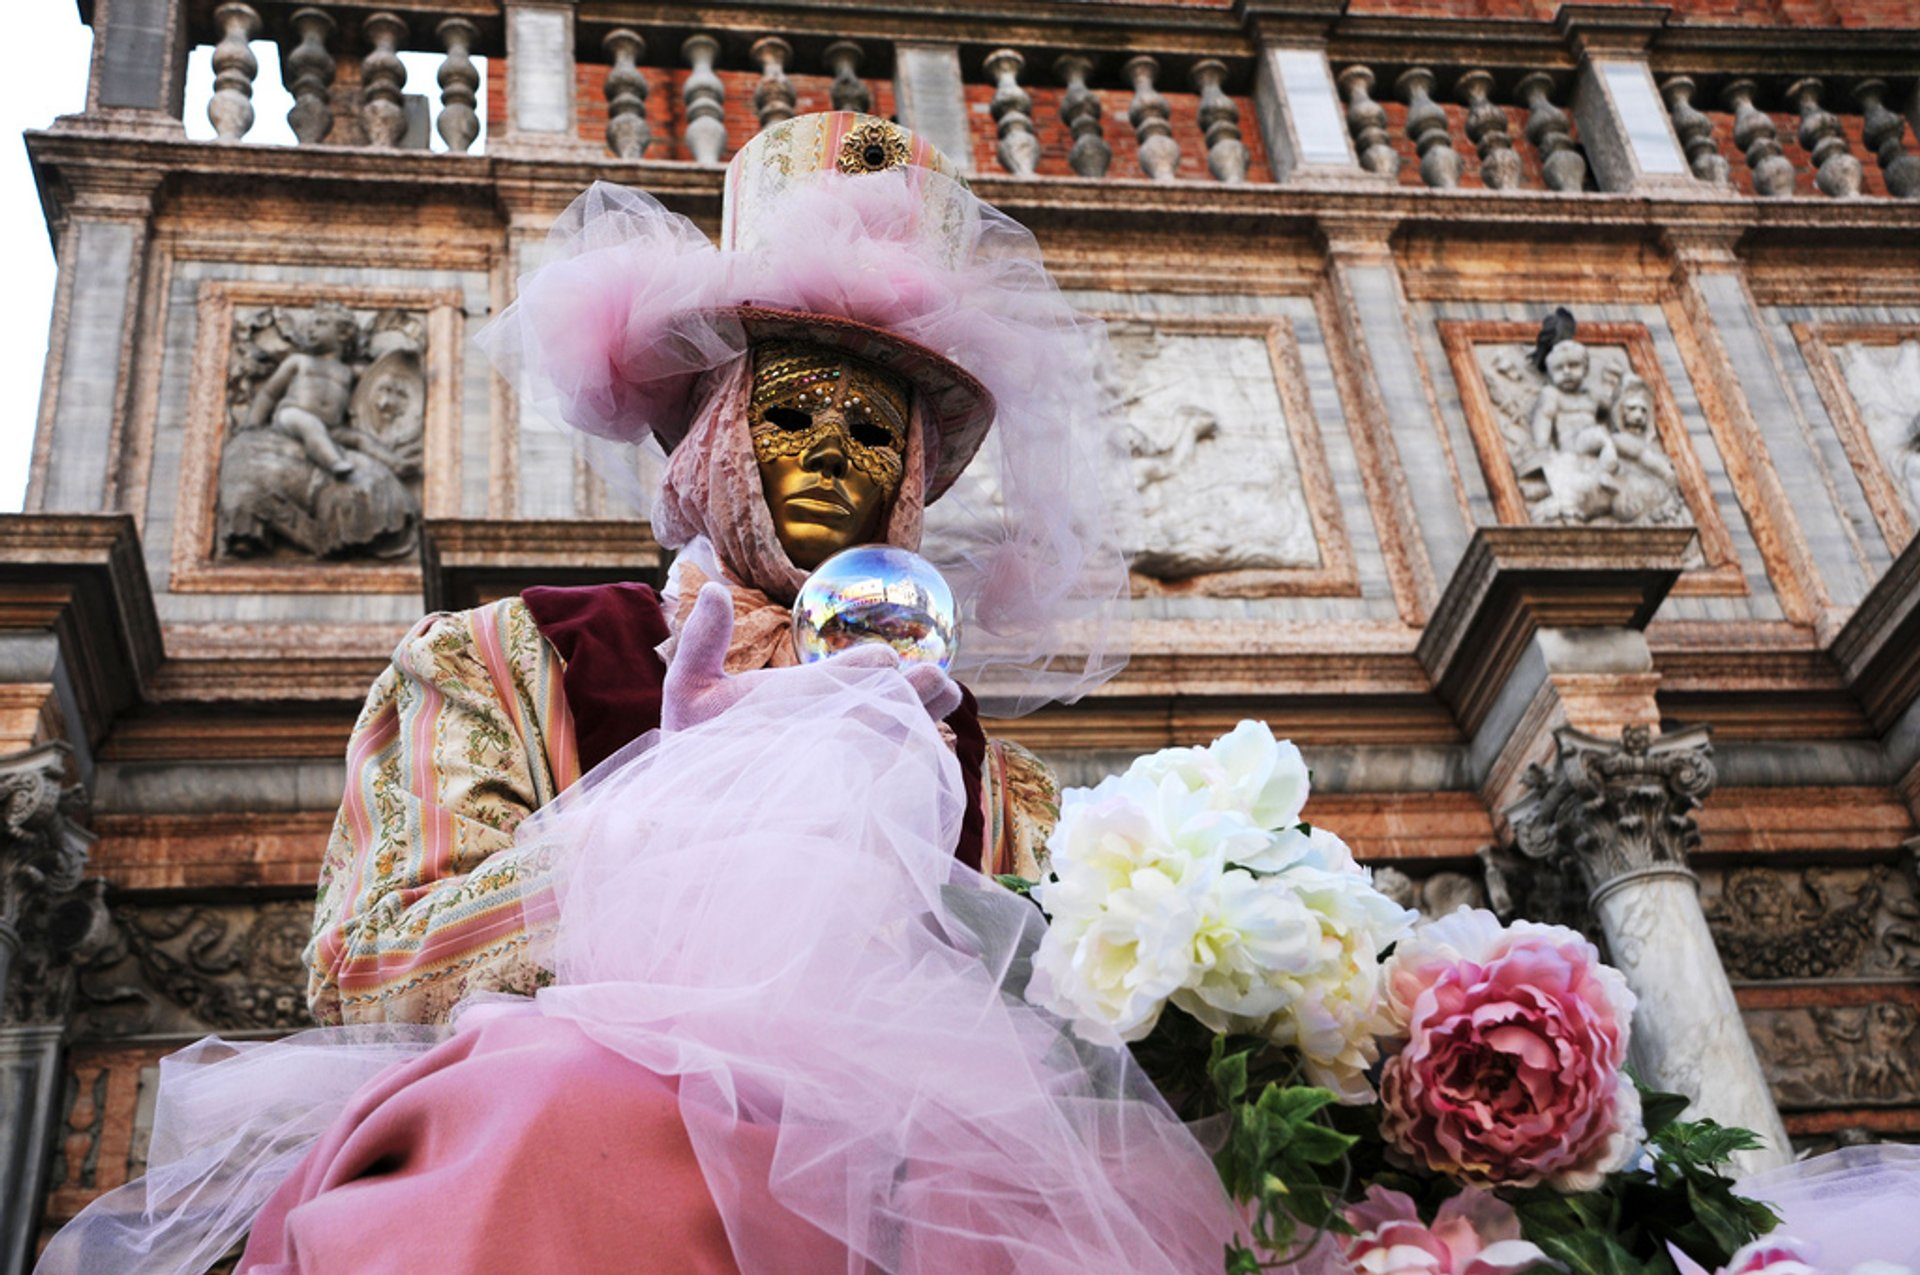 Carnevale Venezia in Venice 2019 - Best Time